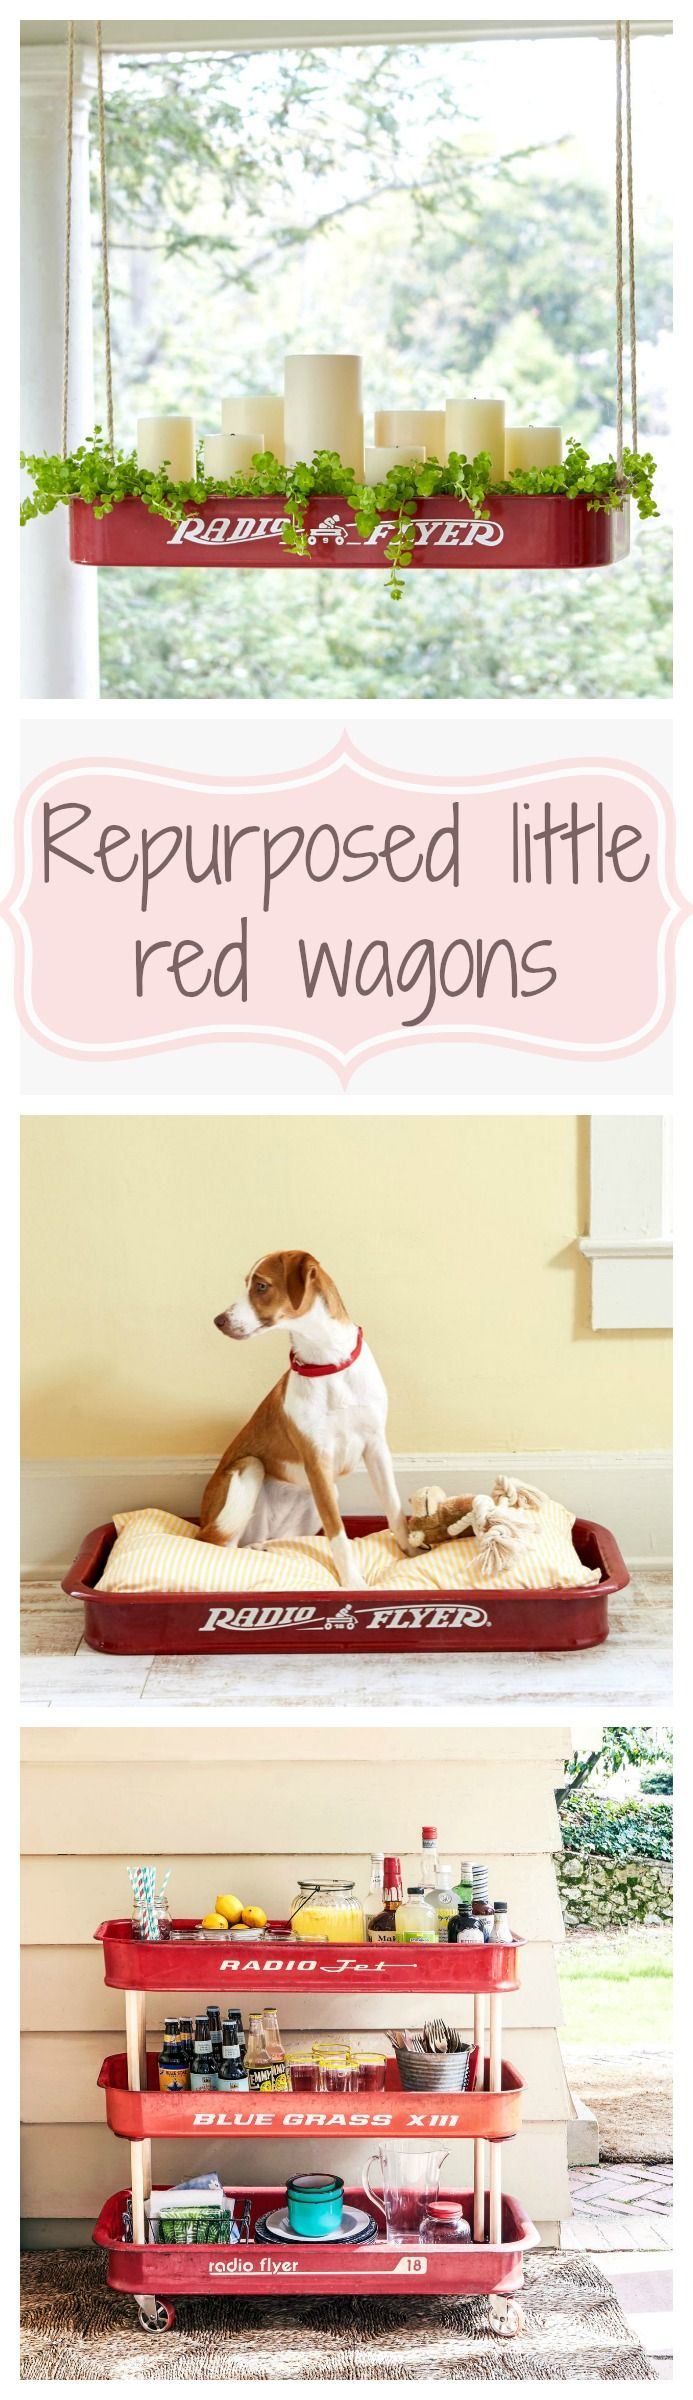 Repurpose your old little red wagon with these done-in-a-day DIY projects that will add nostalgic style in and around the house!